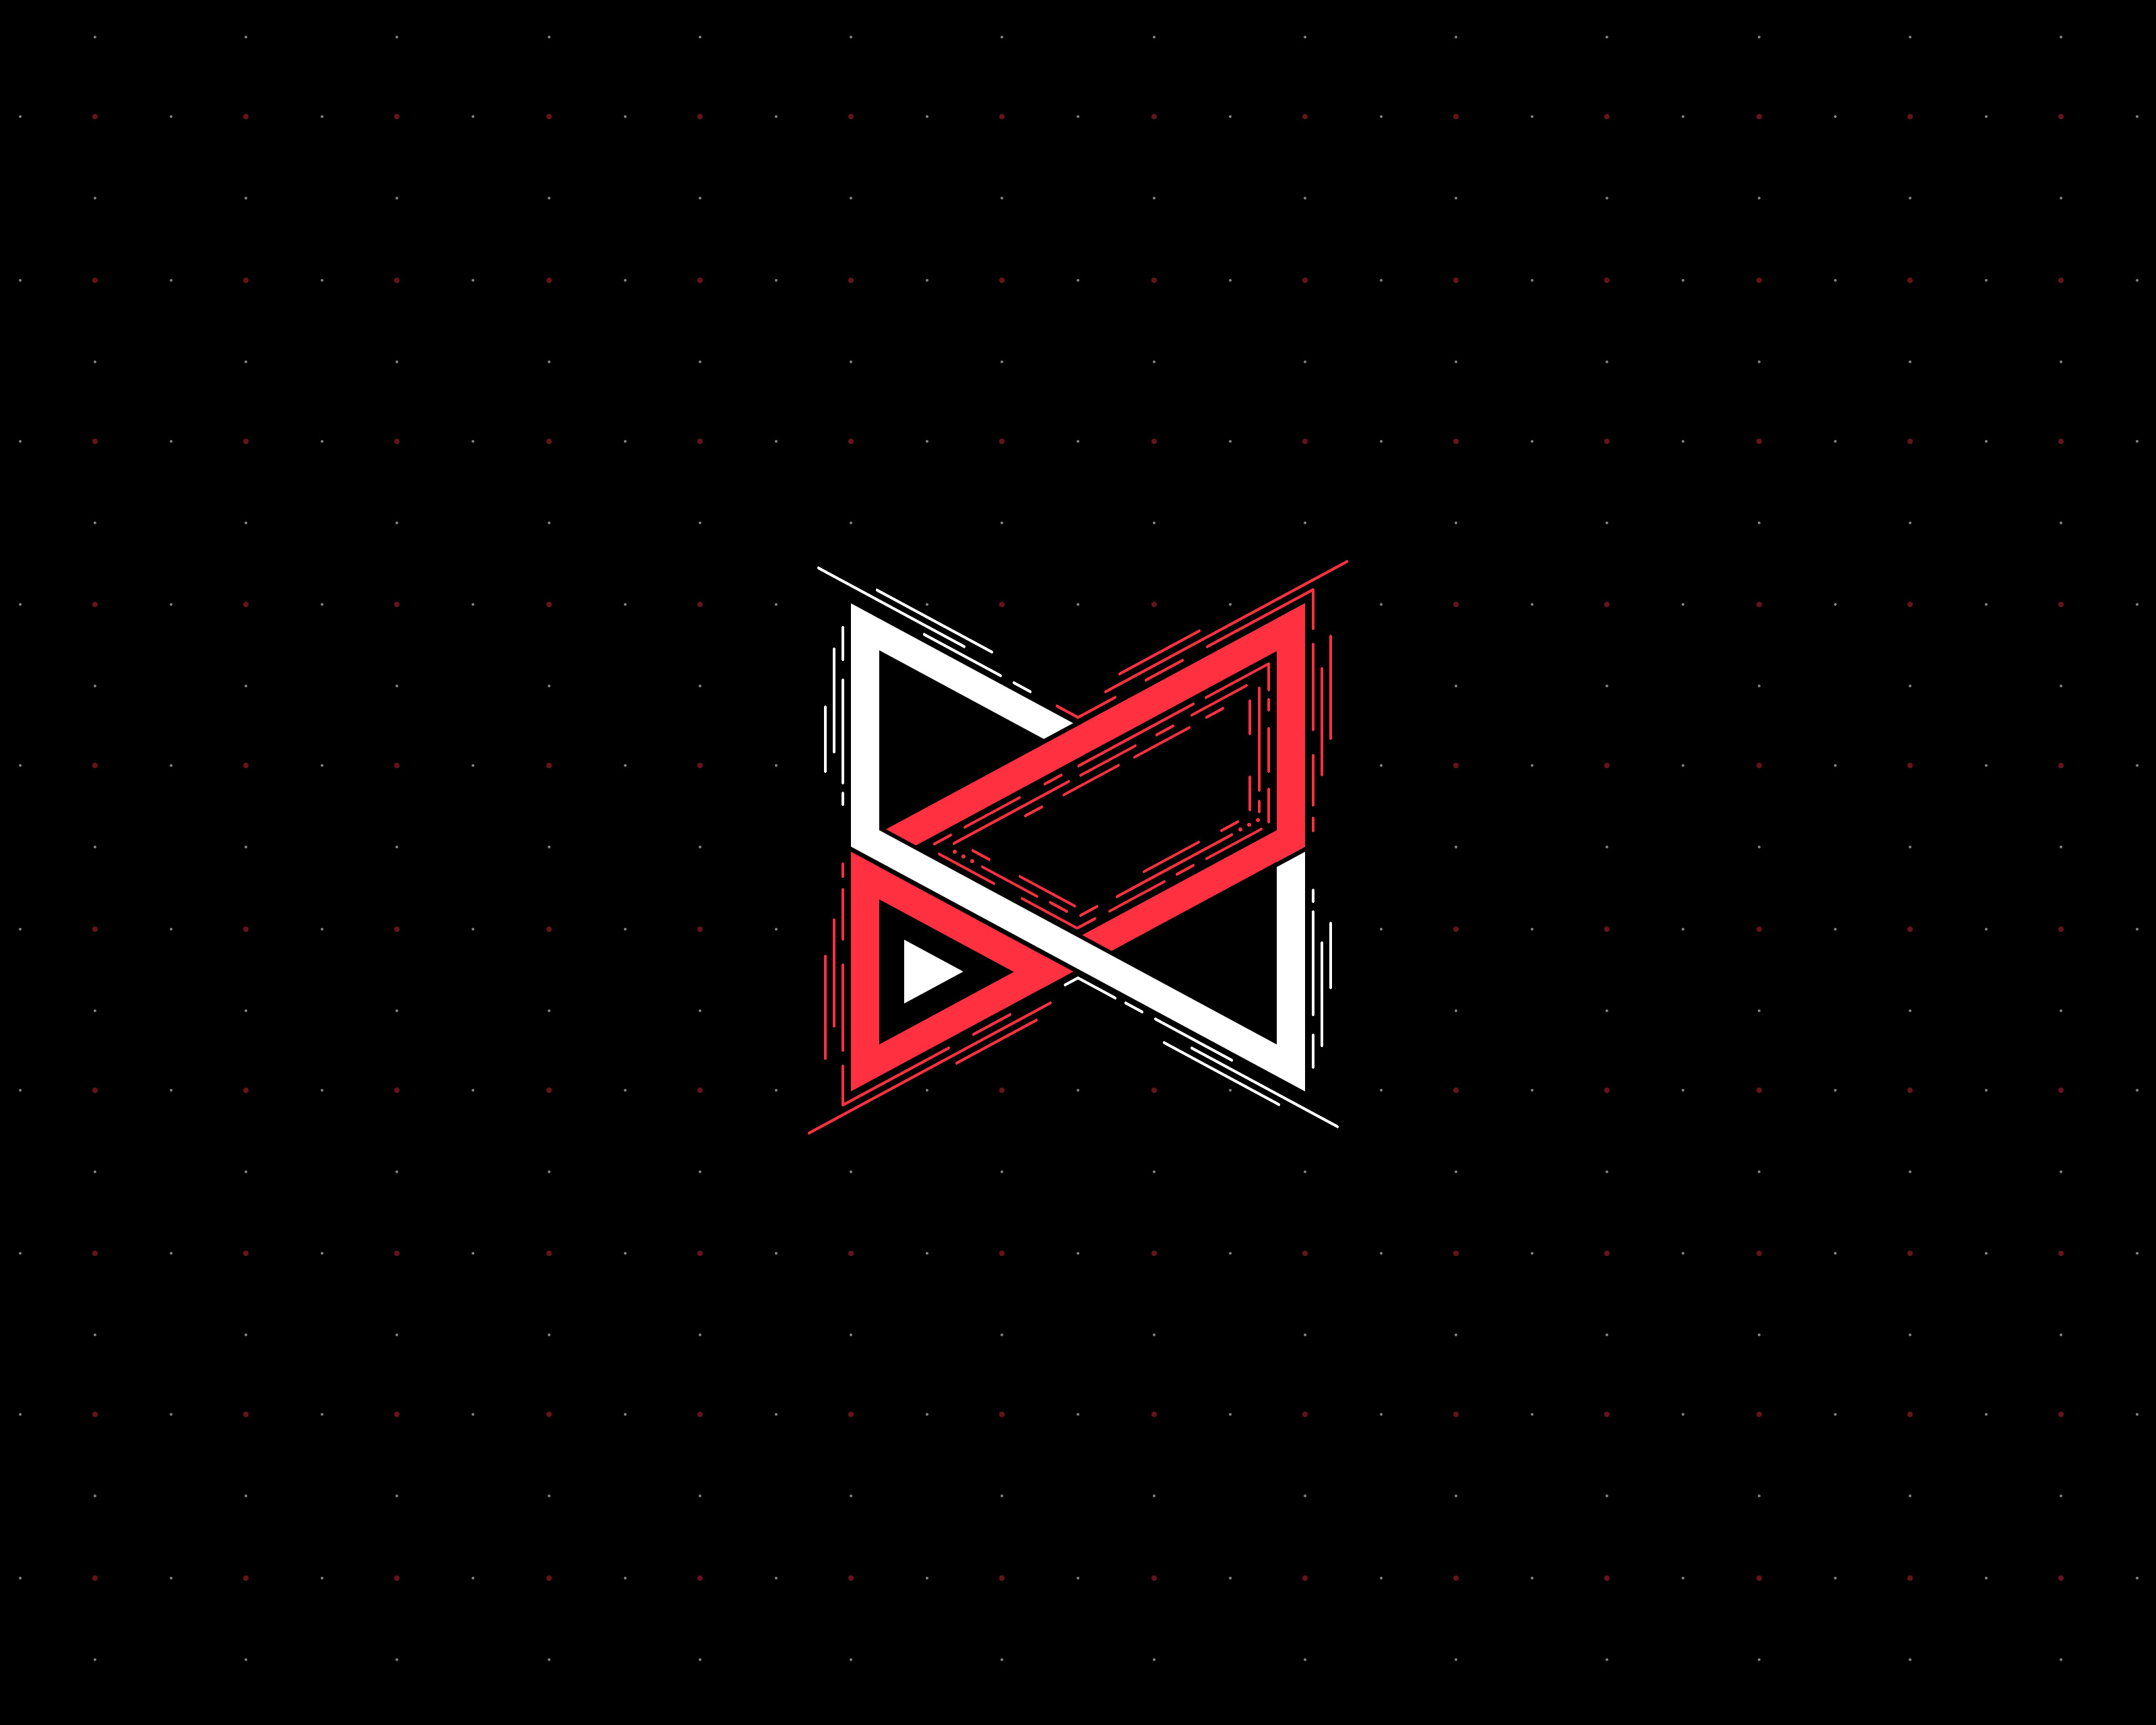 Mkbhd Logo 4k Hd Logo 4k Wallpapers Images Backgrounds Photos And Pictures